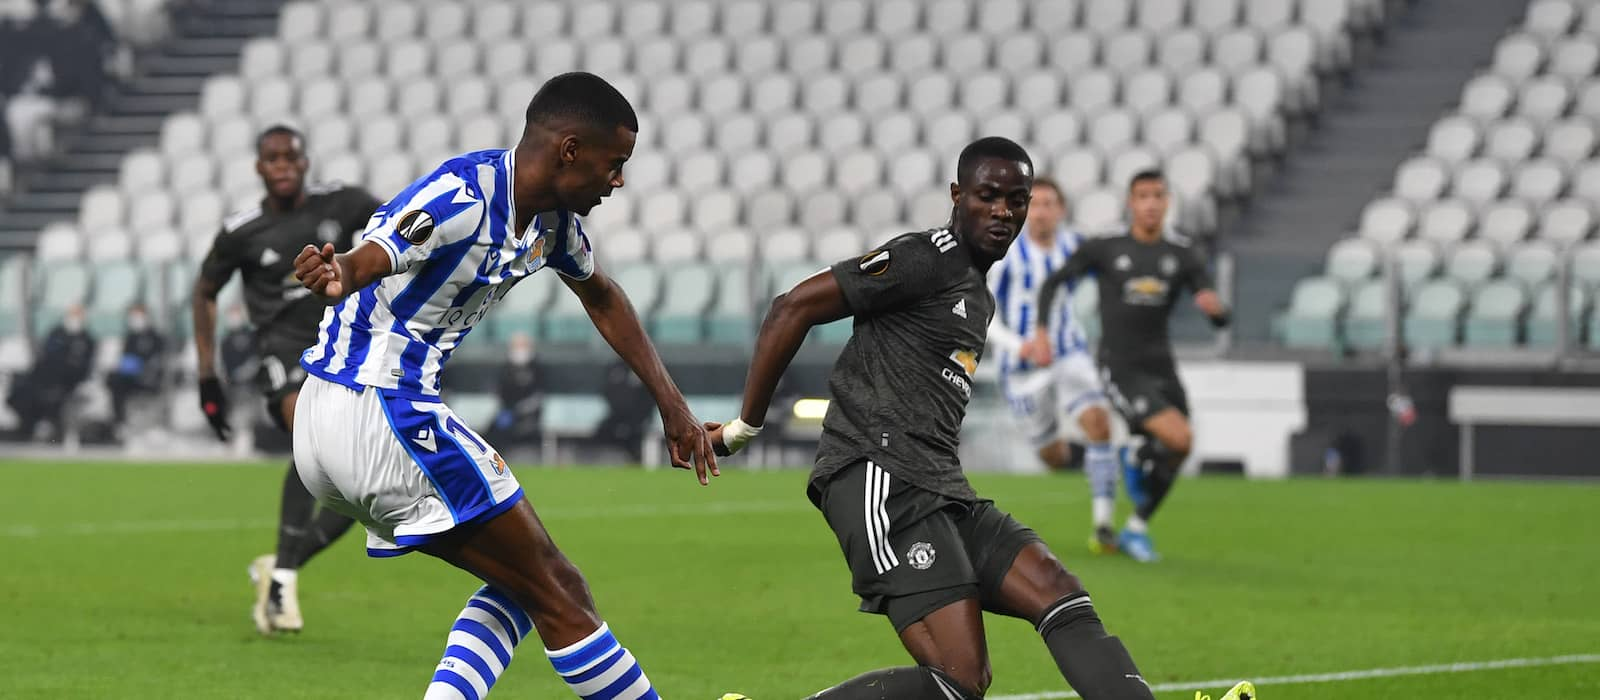 Eric Bailly crucial in stunning defensive display vs Real Sociedad